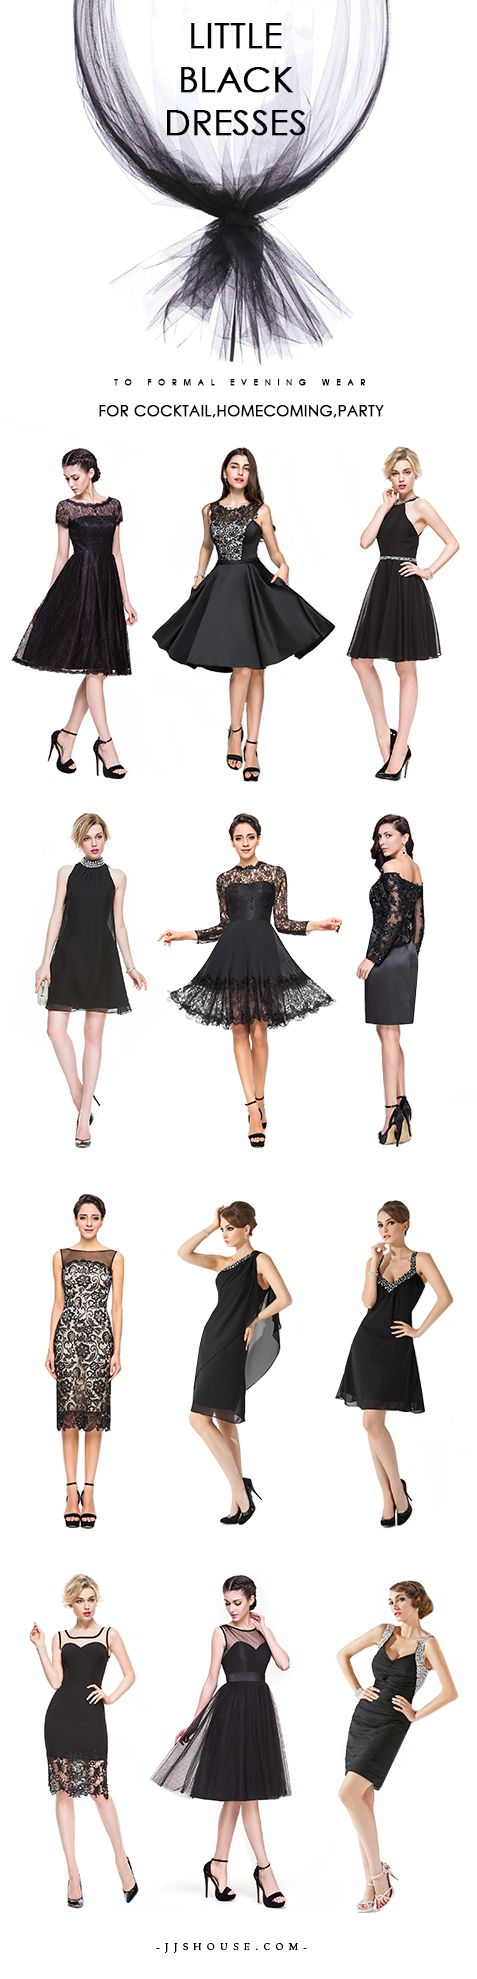 Little Black Dresses to formal evening wear. For Cocktail,Homecoming,Party  #littleblackdress